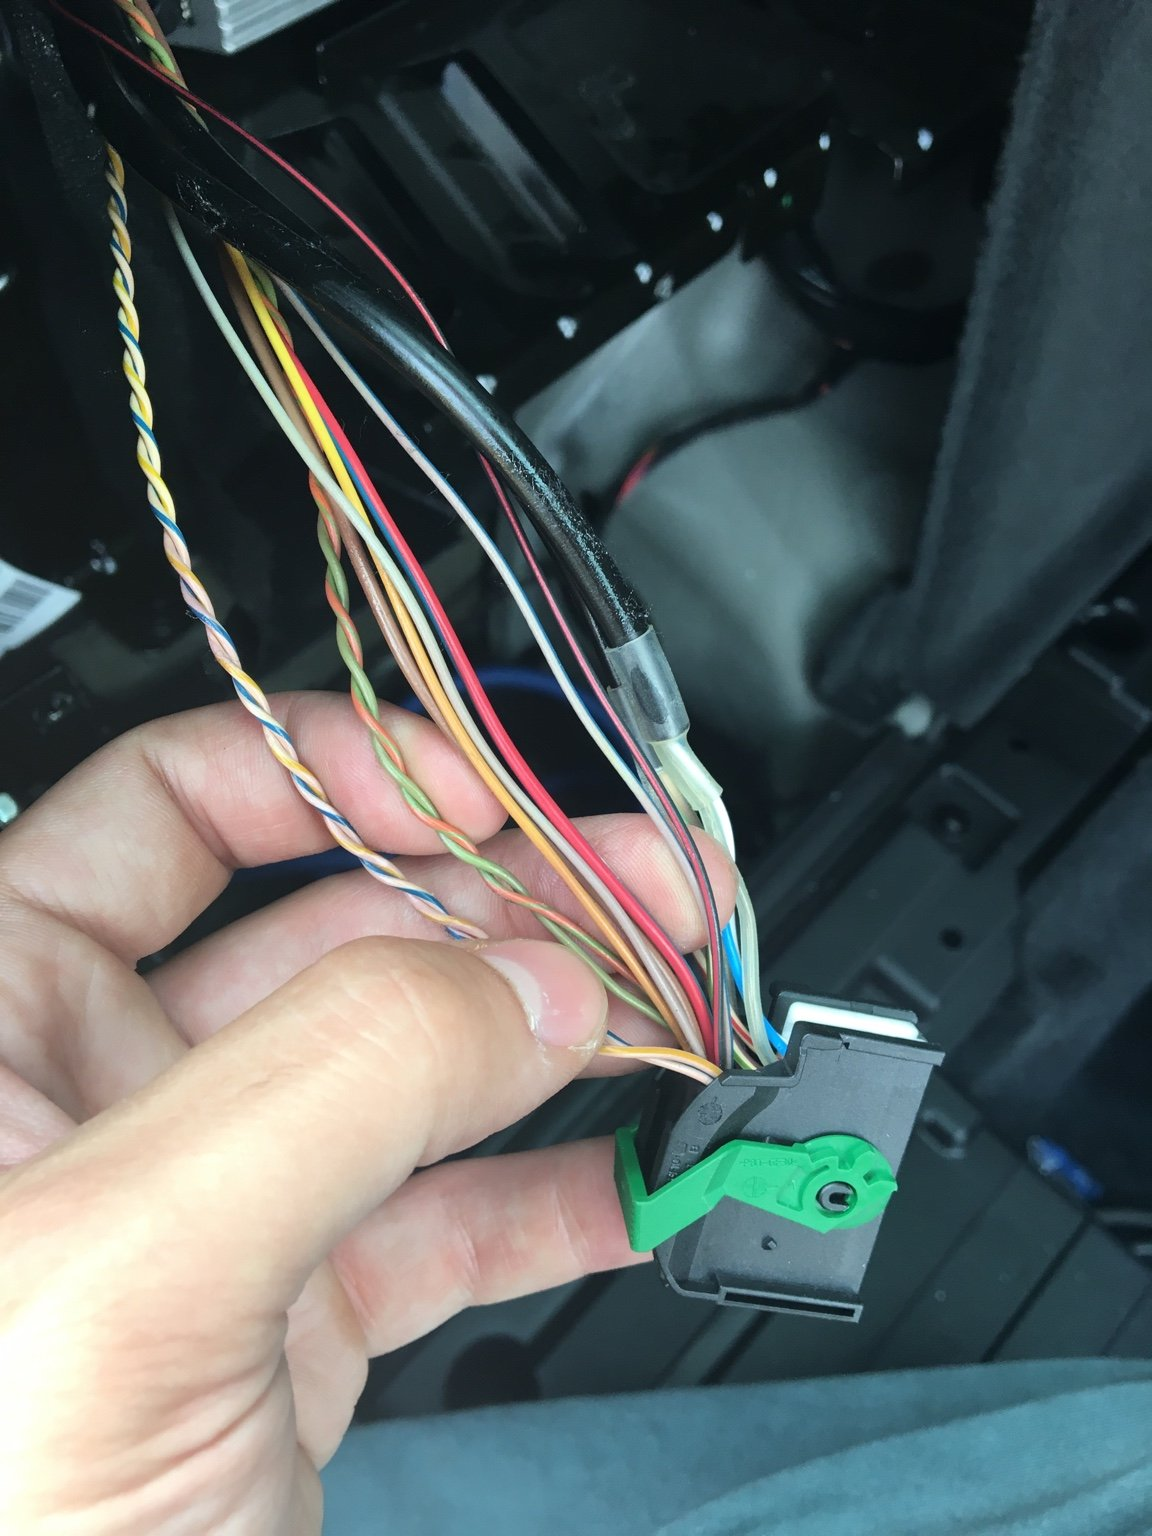 Amplifier Wiring Diagram Help Bimmerfest Bmw Forums Amp For 1998 E39 Current Wire Connector On My Vehicle